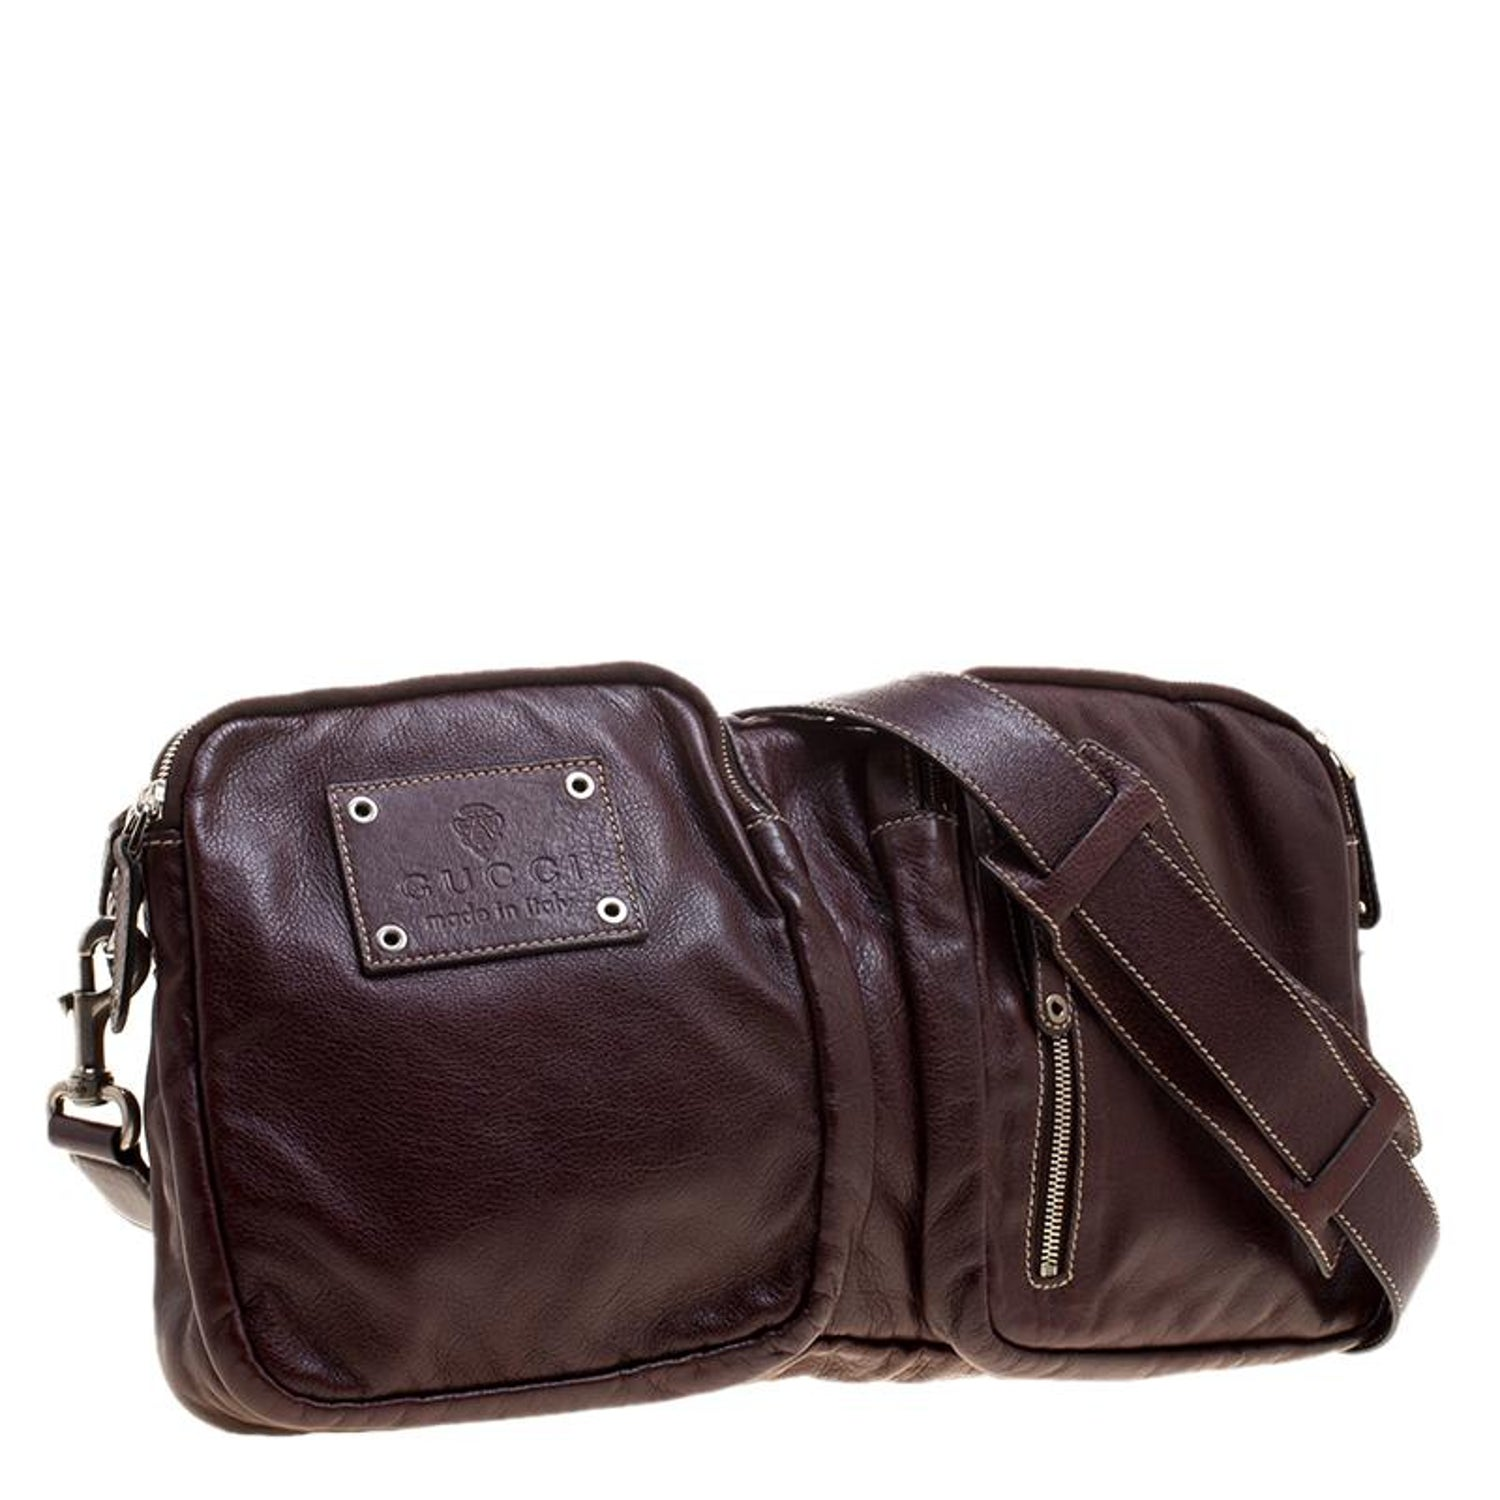 834e7db39a5dd2 Gucci Burgundy Leather Fanny Pack Double Waist Belt Bag at 1stdibs